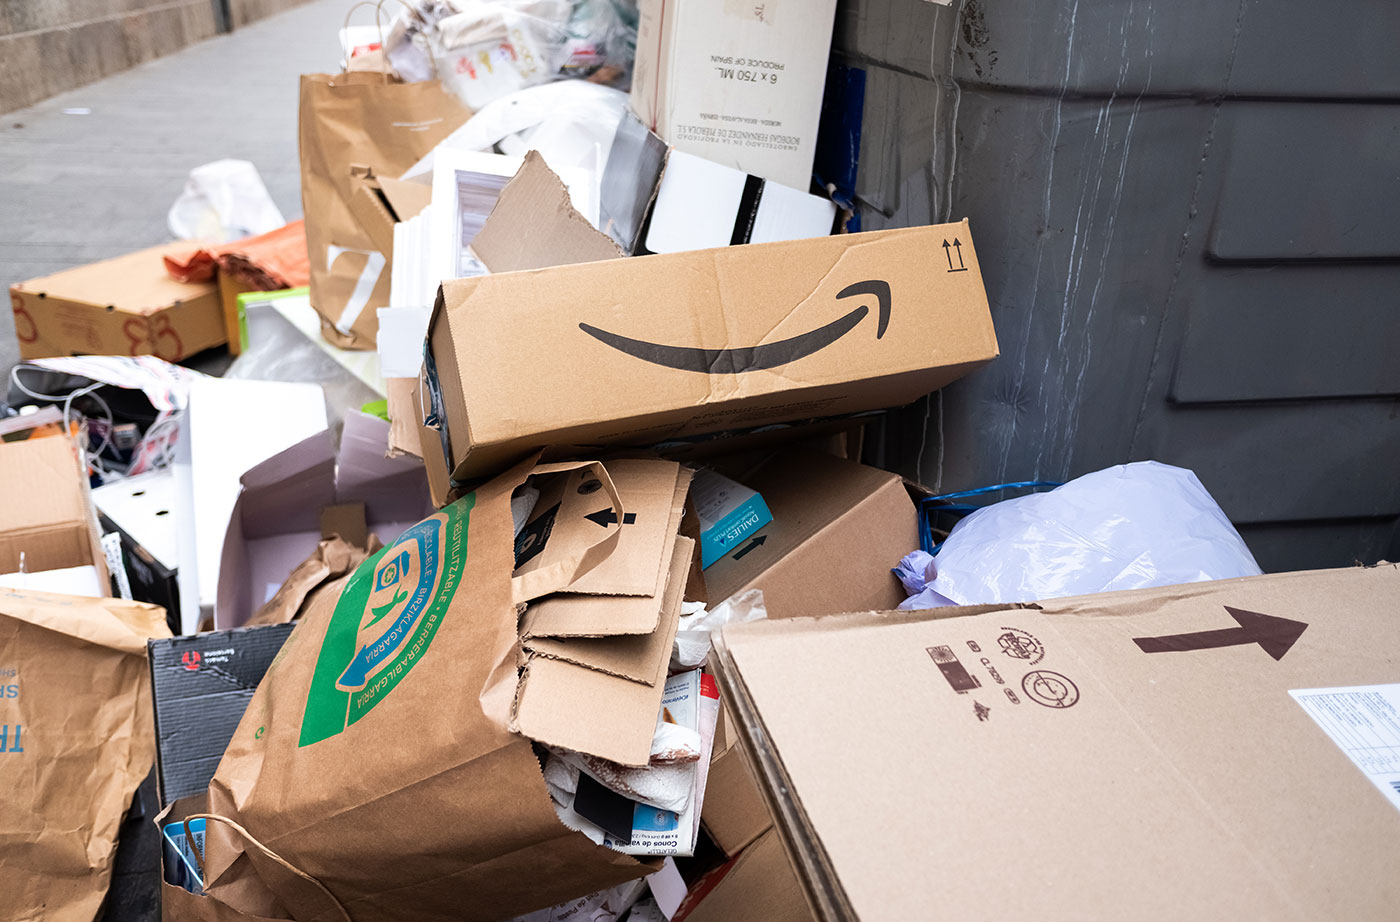 piles of cardboard and other packaging waste